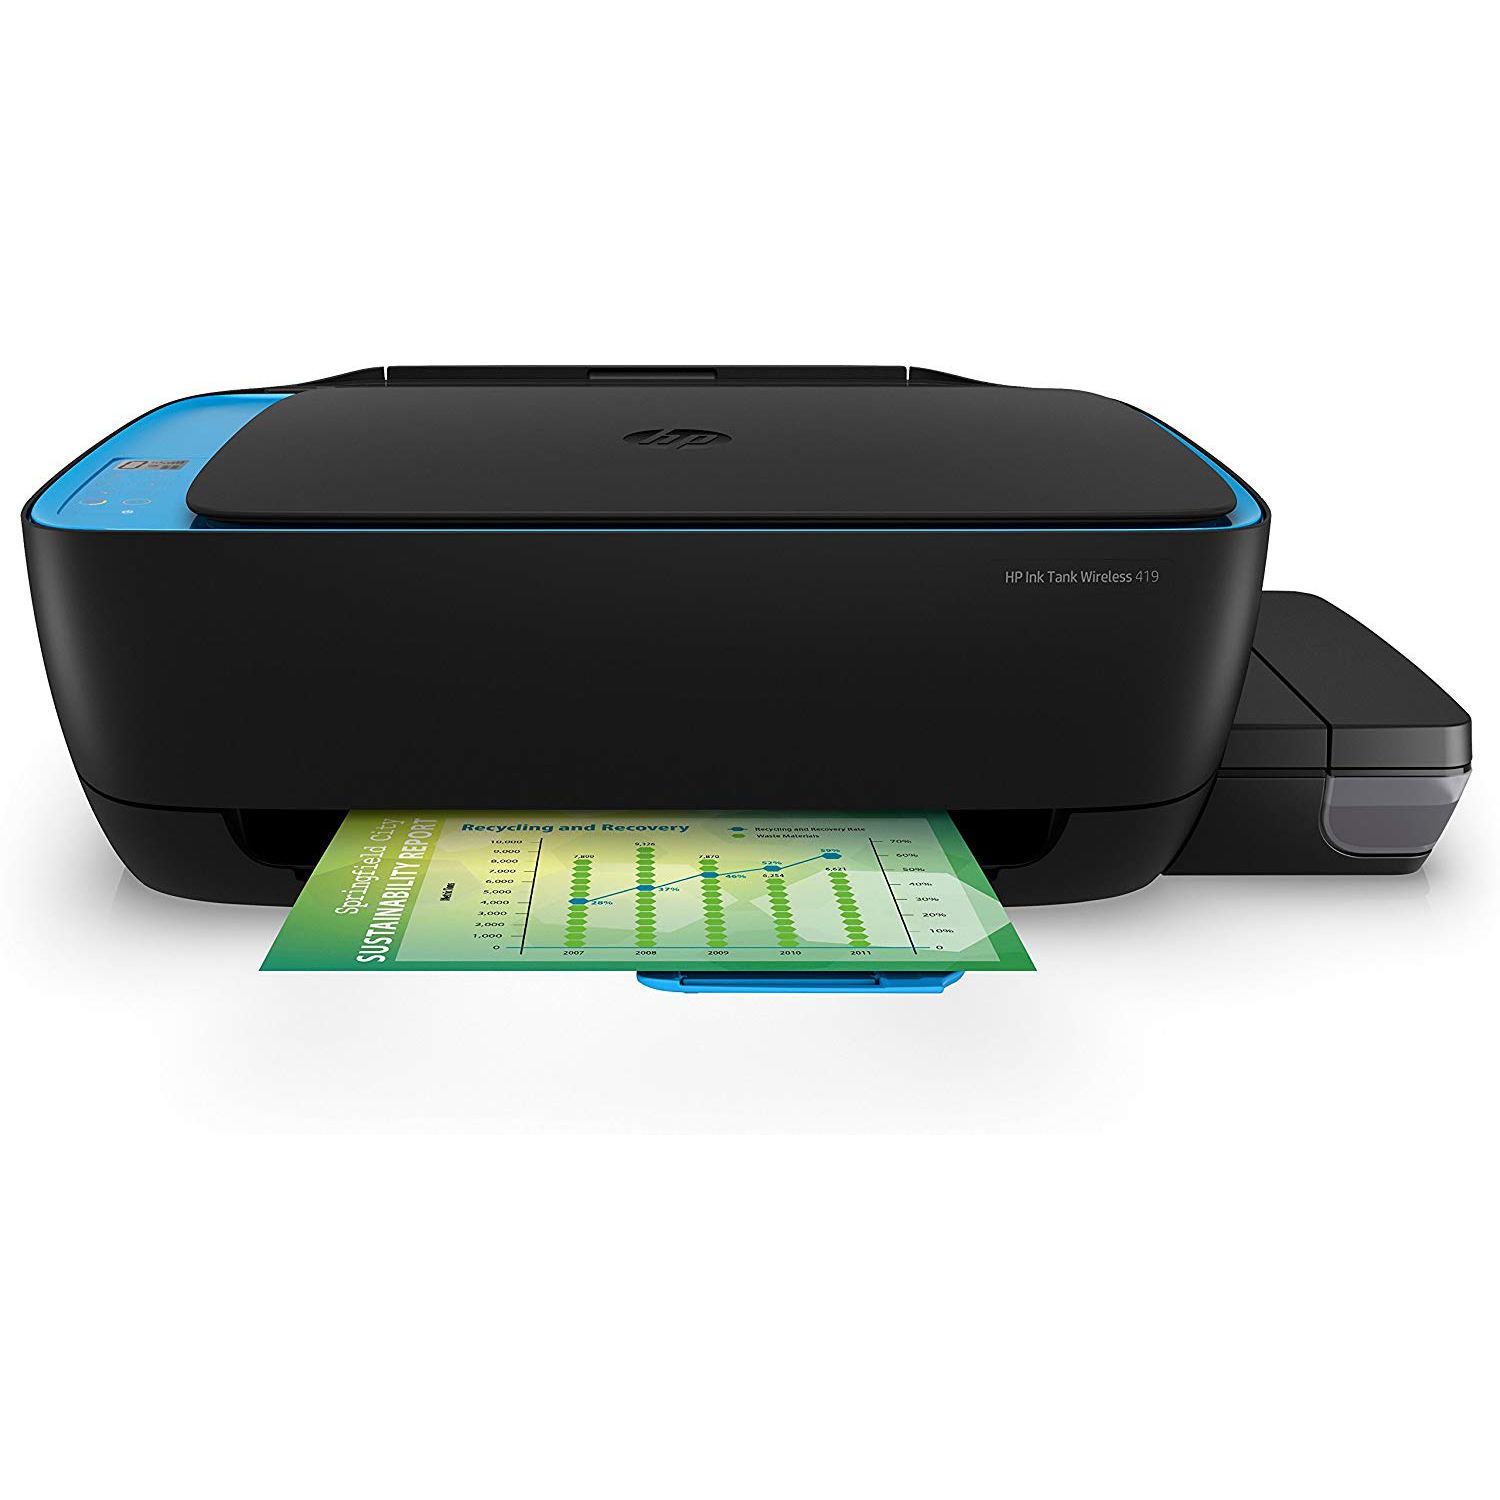 Hp Ink Tank Wireless 419 All In One Multi Function Color